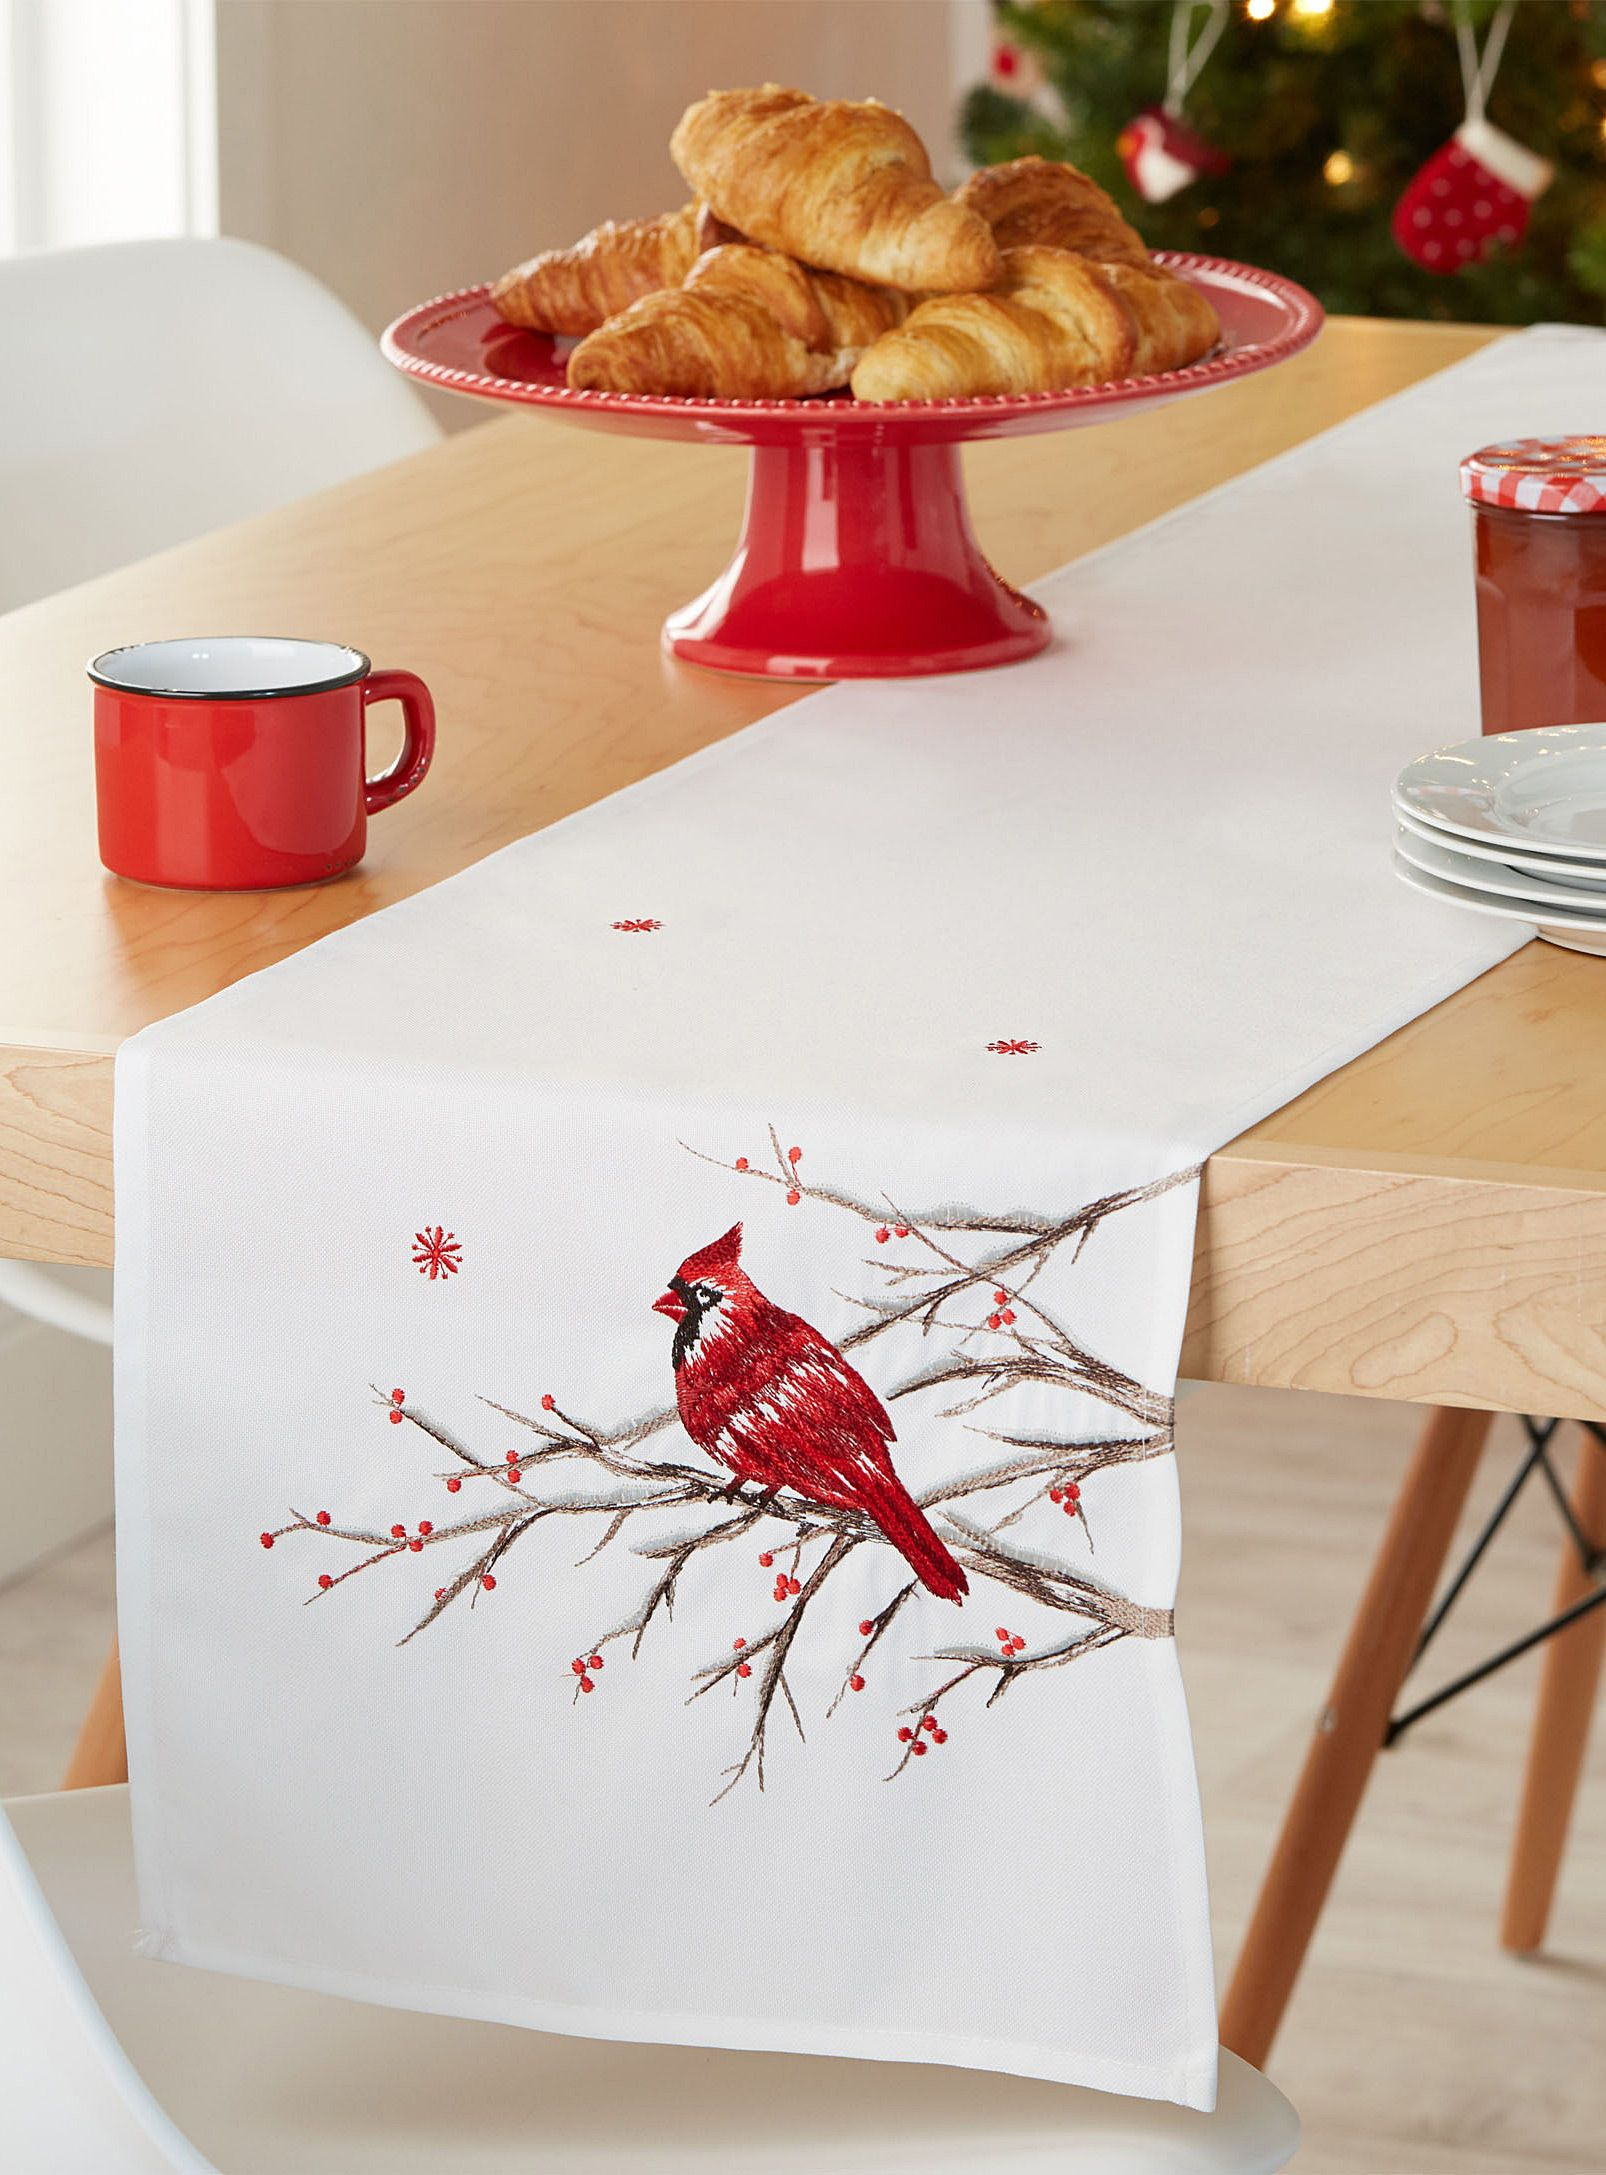 Aesthetic Holiday Exclusively From Simons Maison A Holiday Pattern With A Rustic